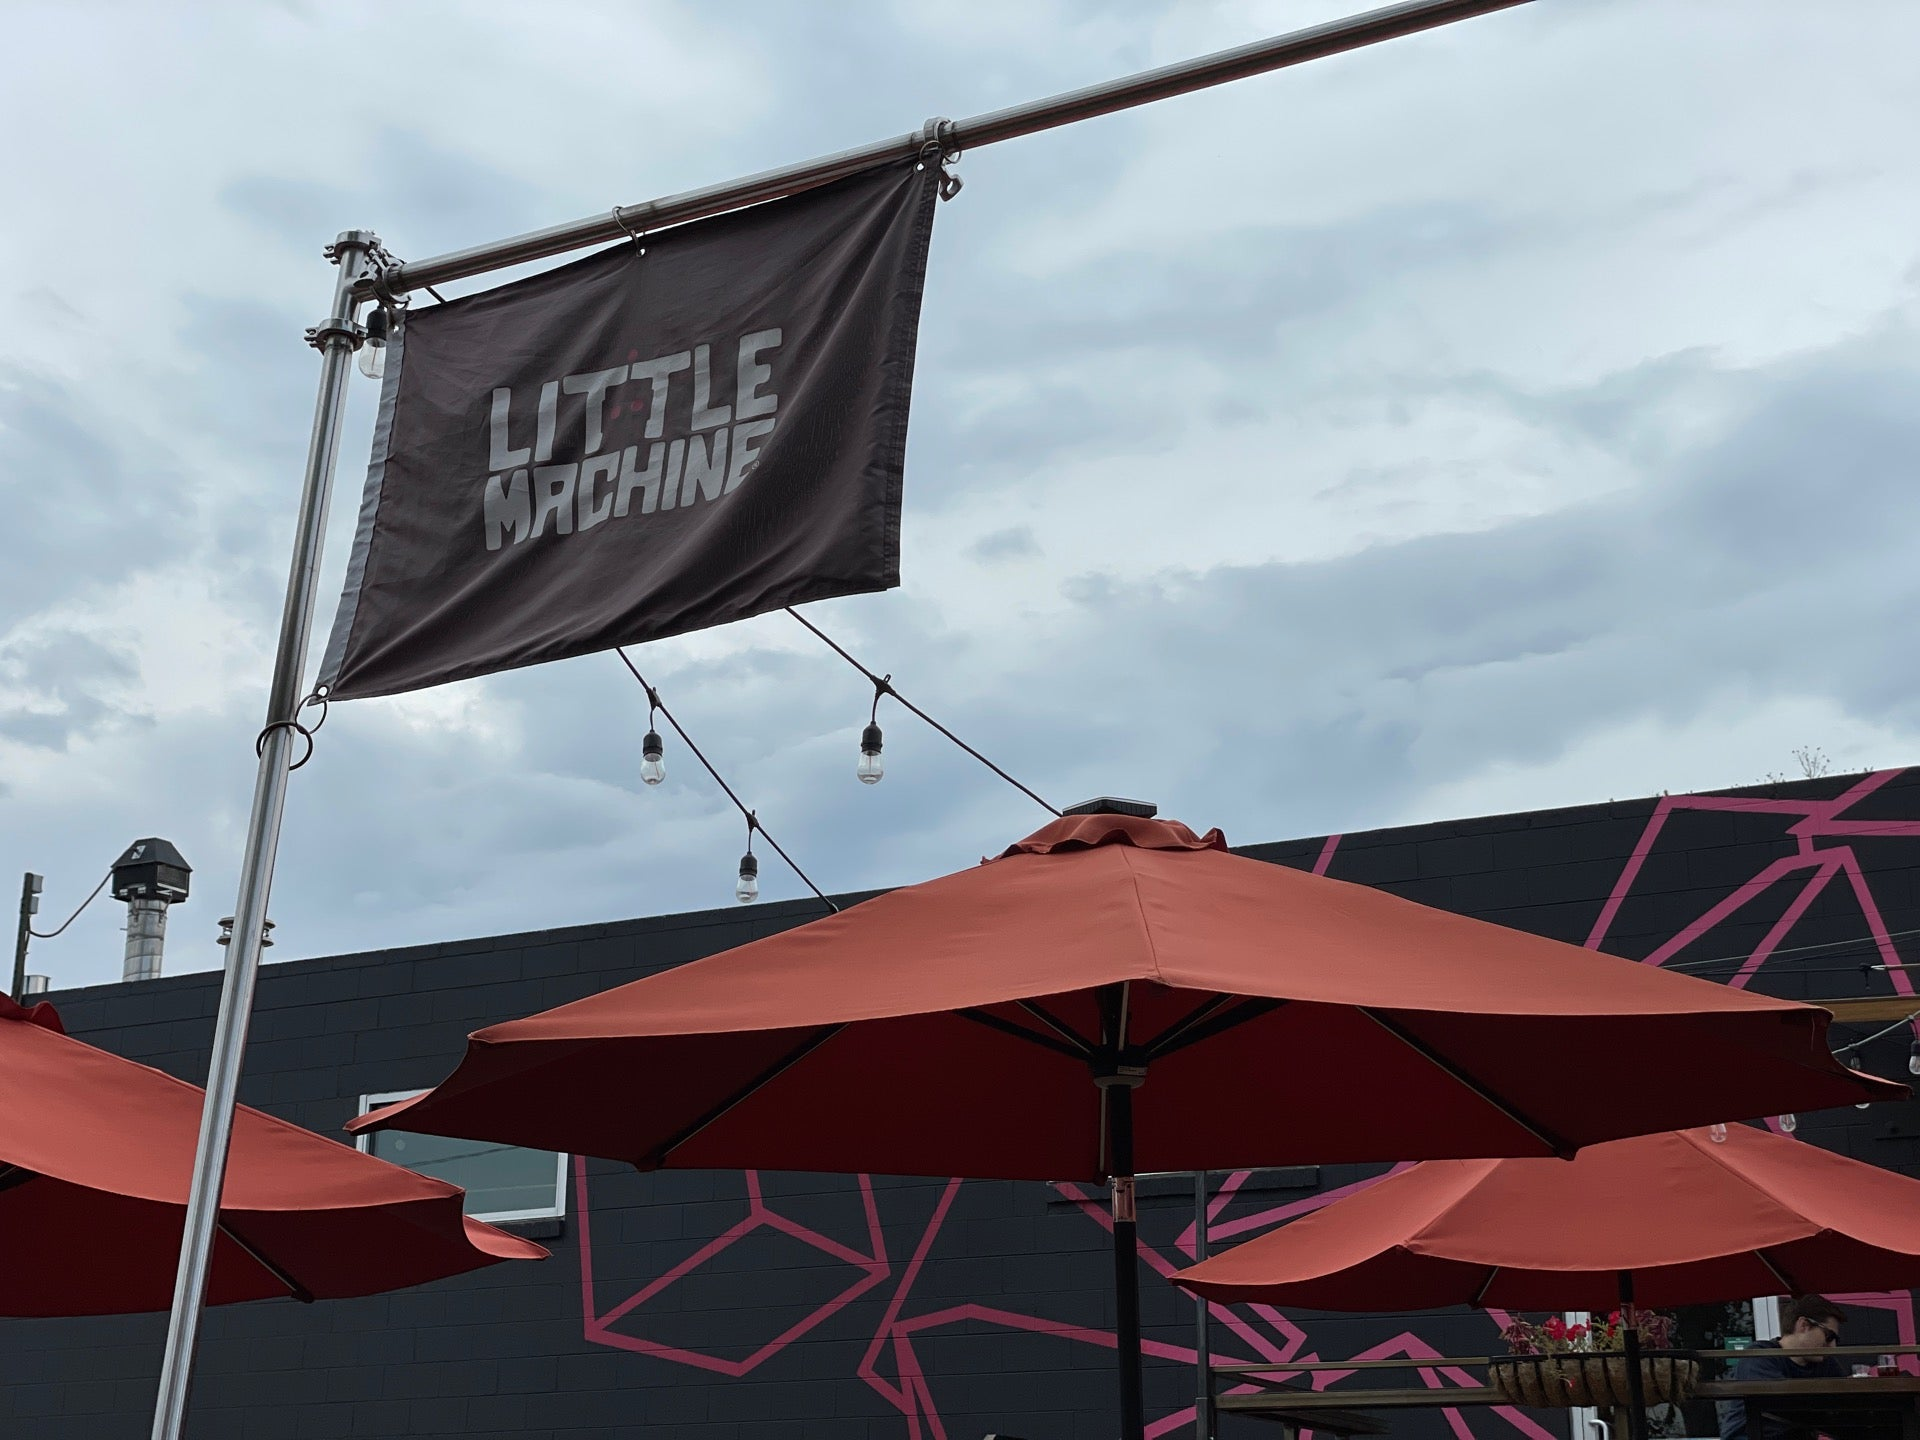 Checked in at Little Machine Beer